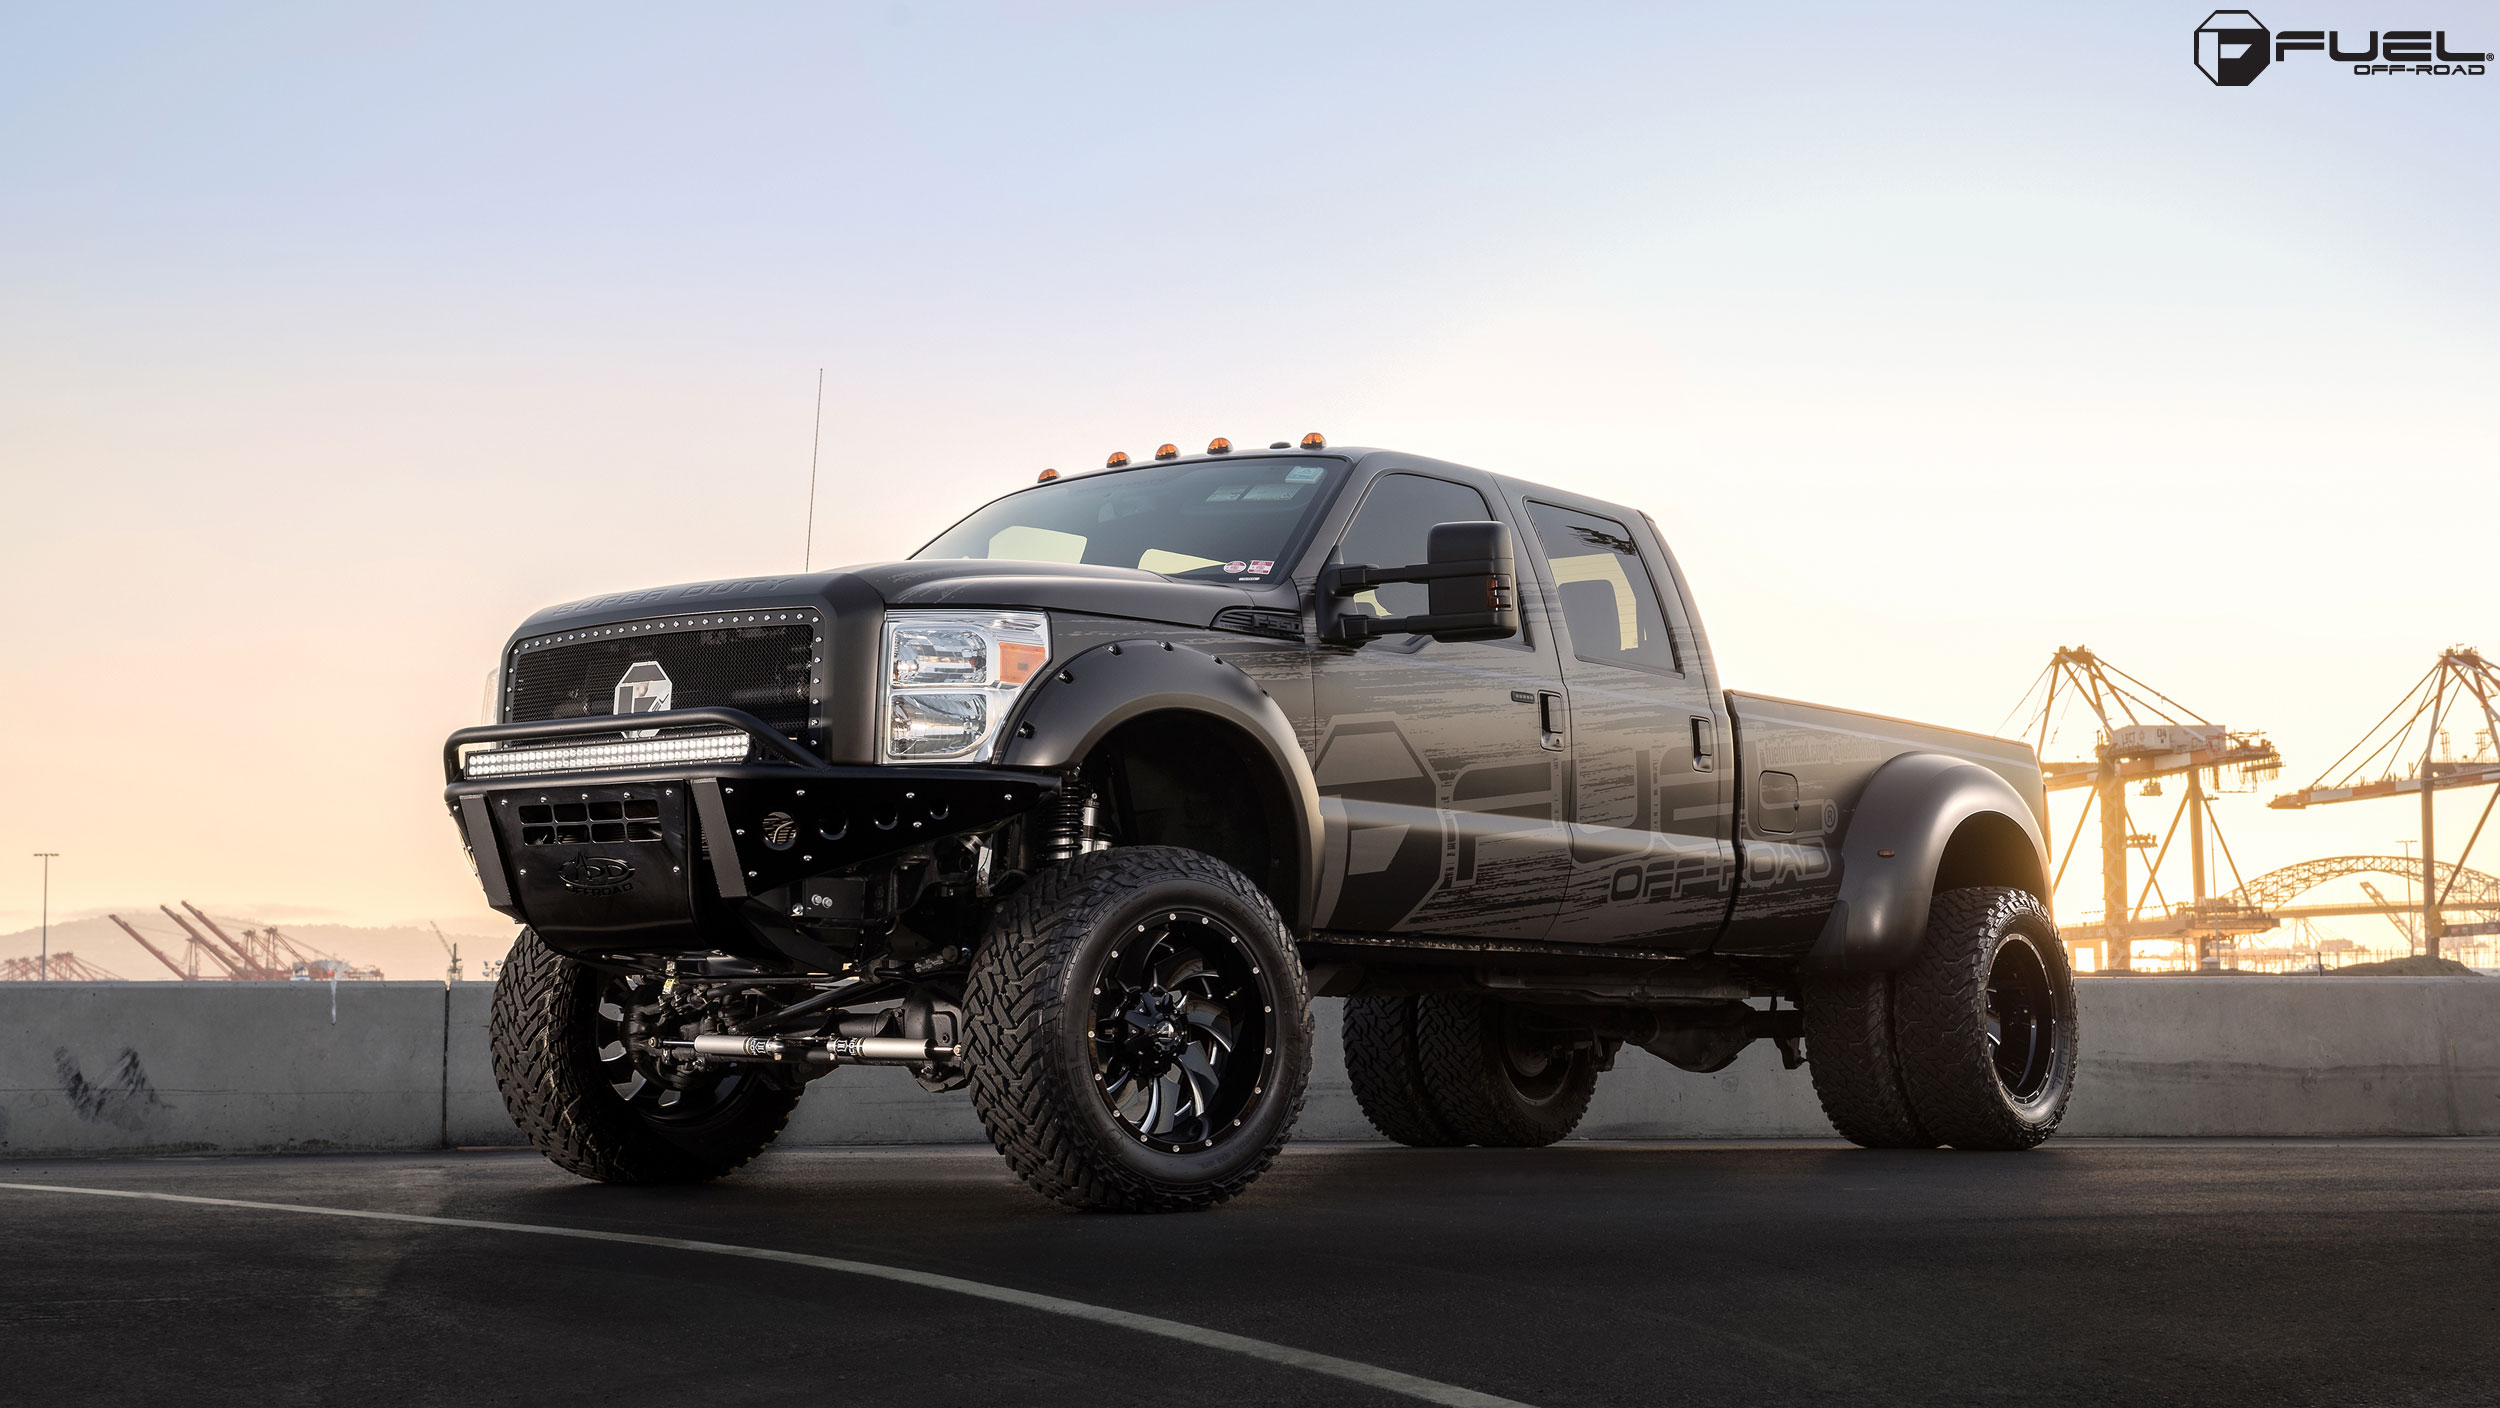 New Fuel Cleaver Forged 2-pc. Dually - Fuel Off-Road Wheels